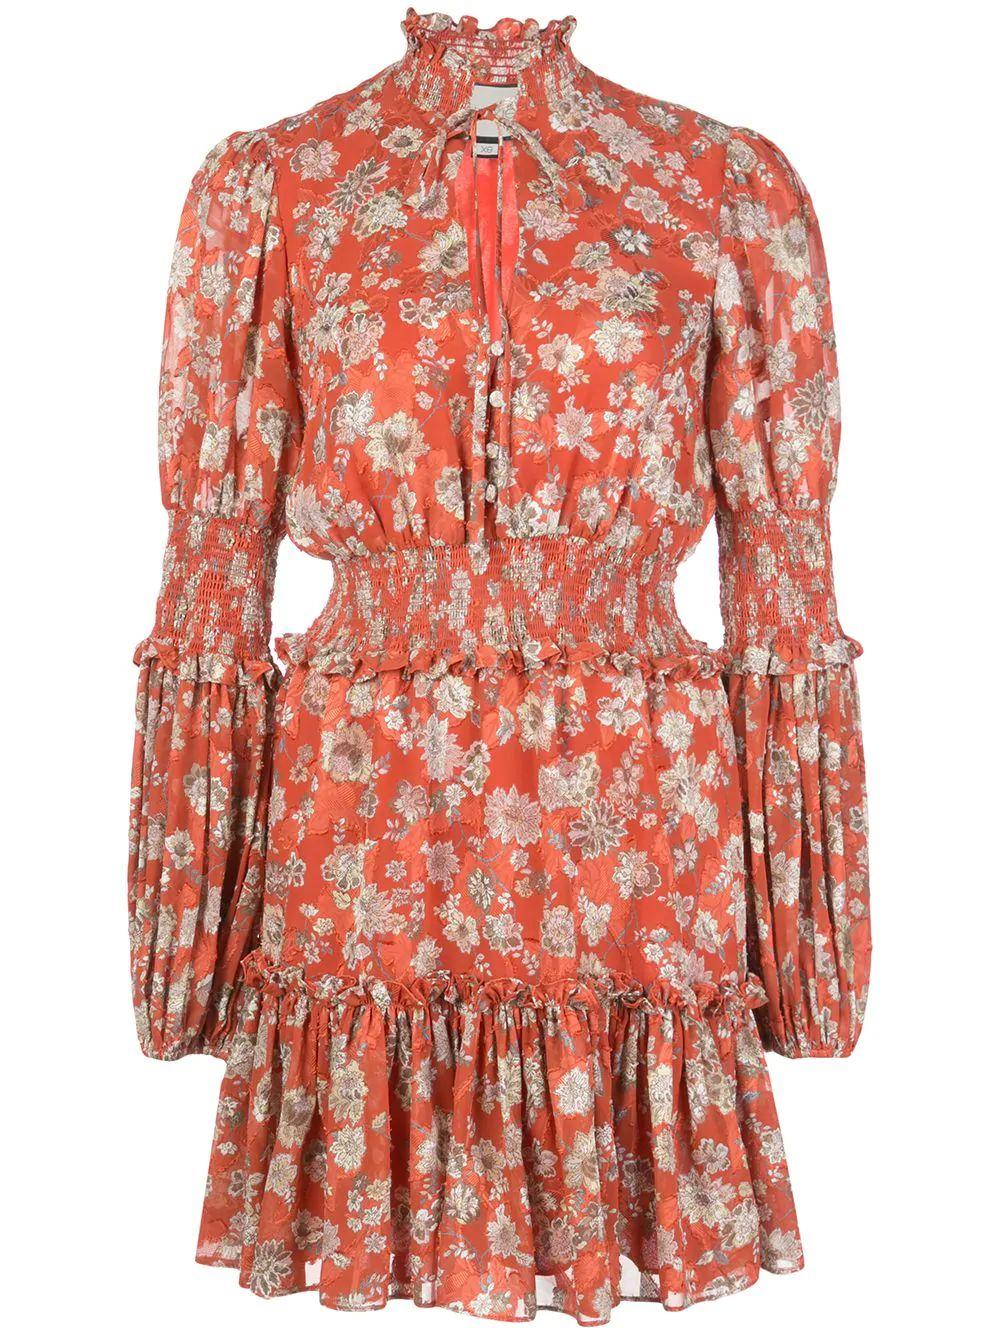 Rosewell 3/4 Sleeve Smocked Floral Dress